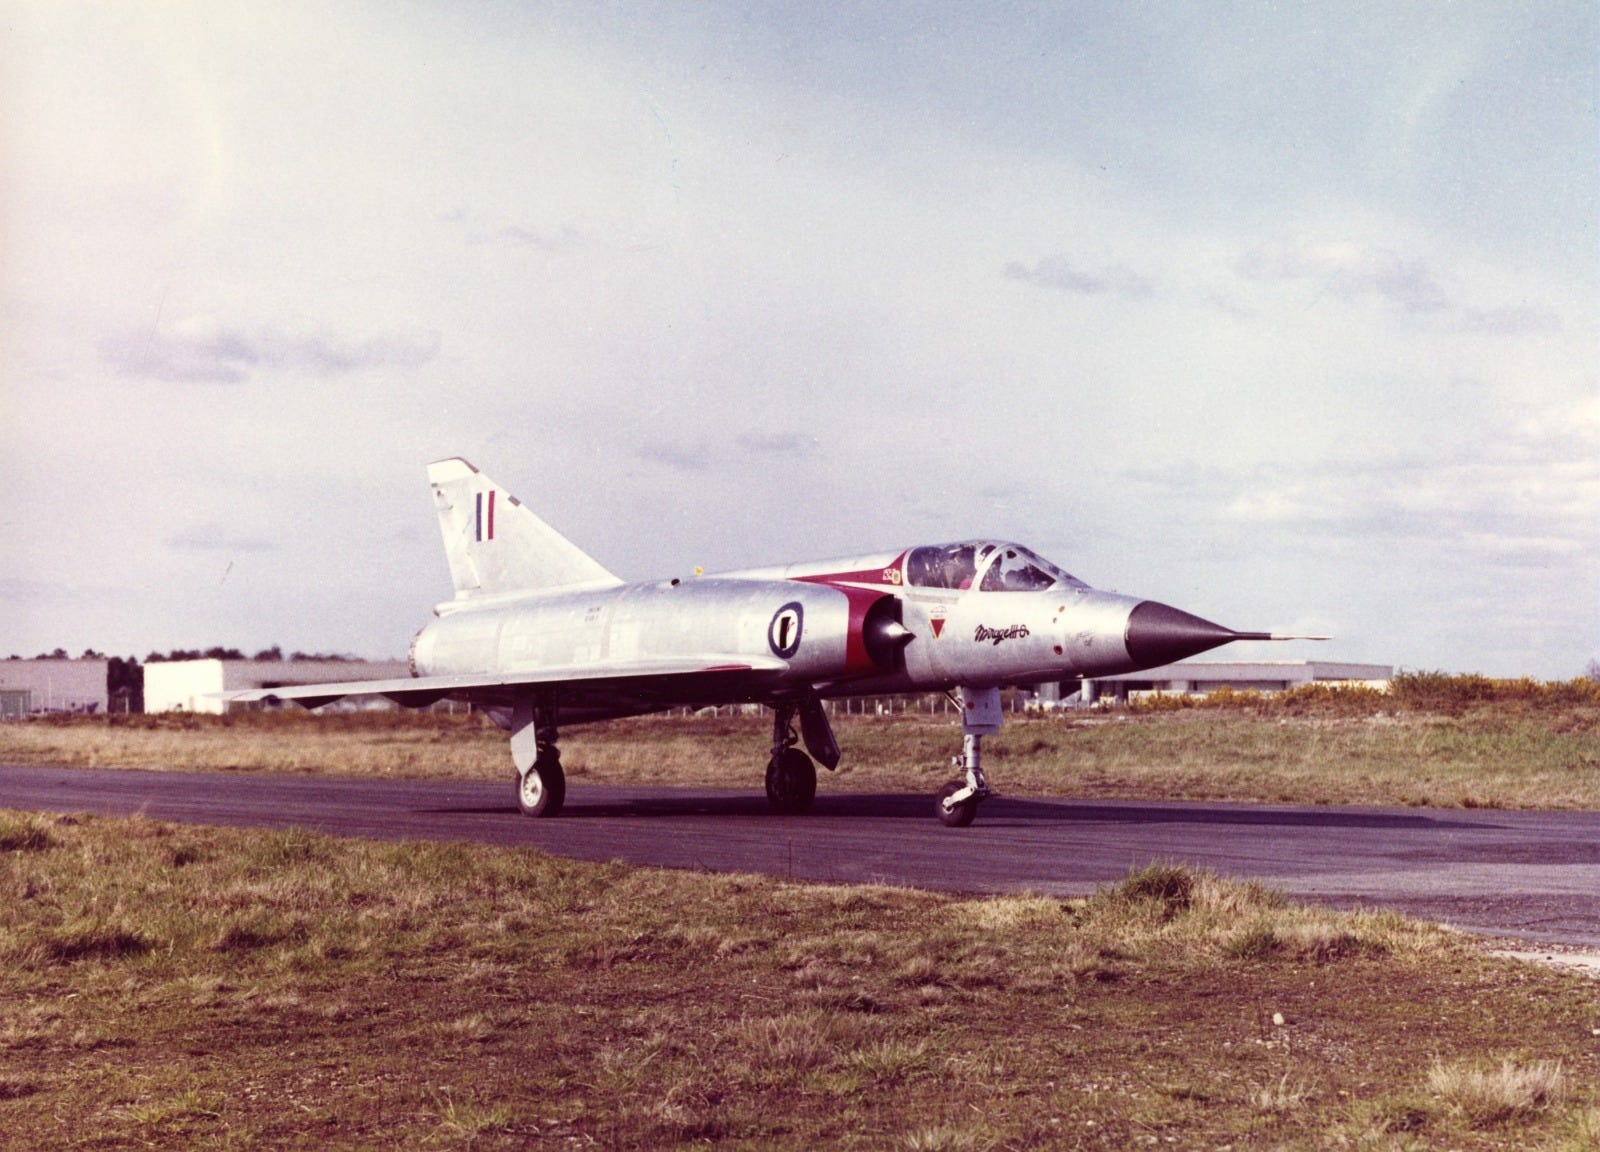 Dassault Mirage III aircraft, showing long pitot tube on the nose cone.